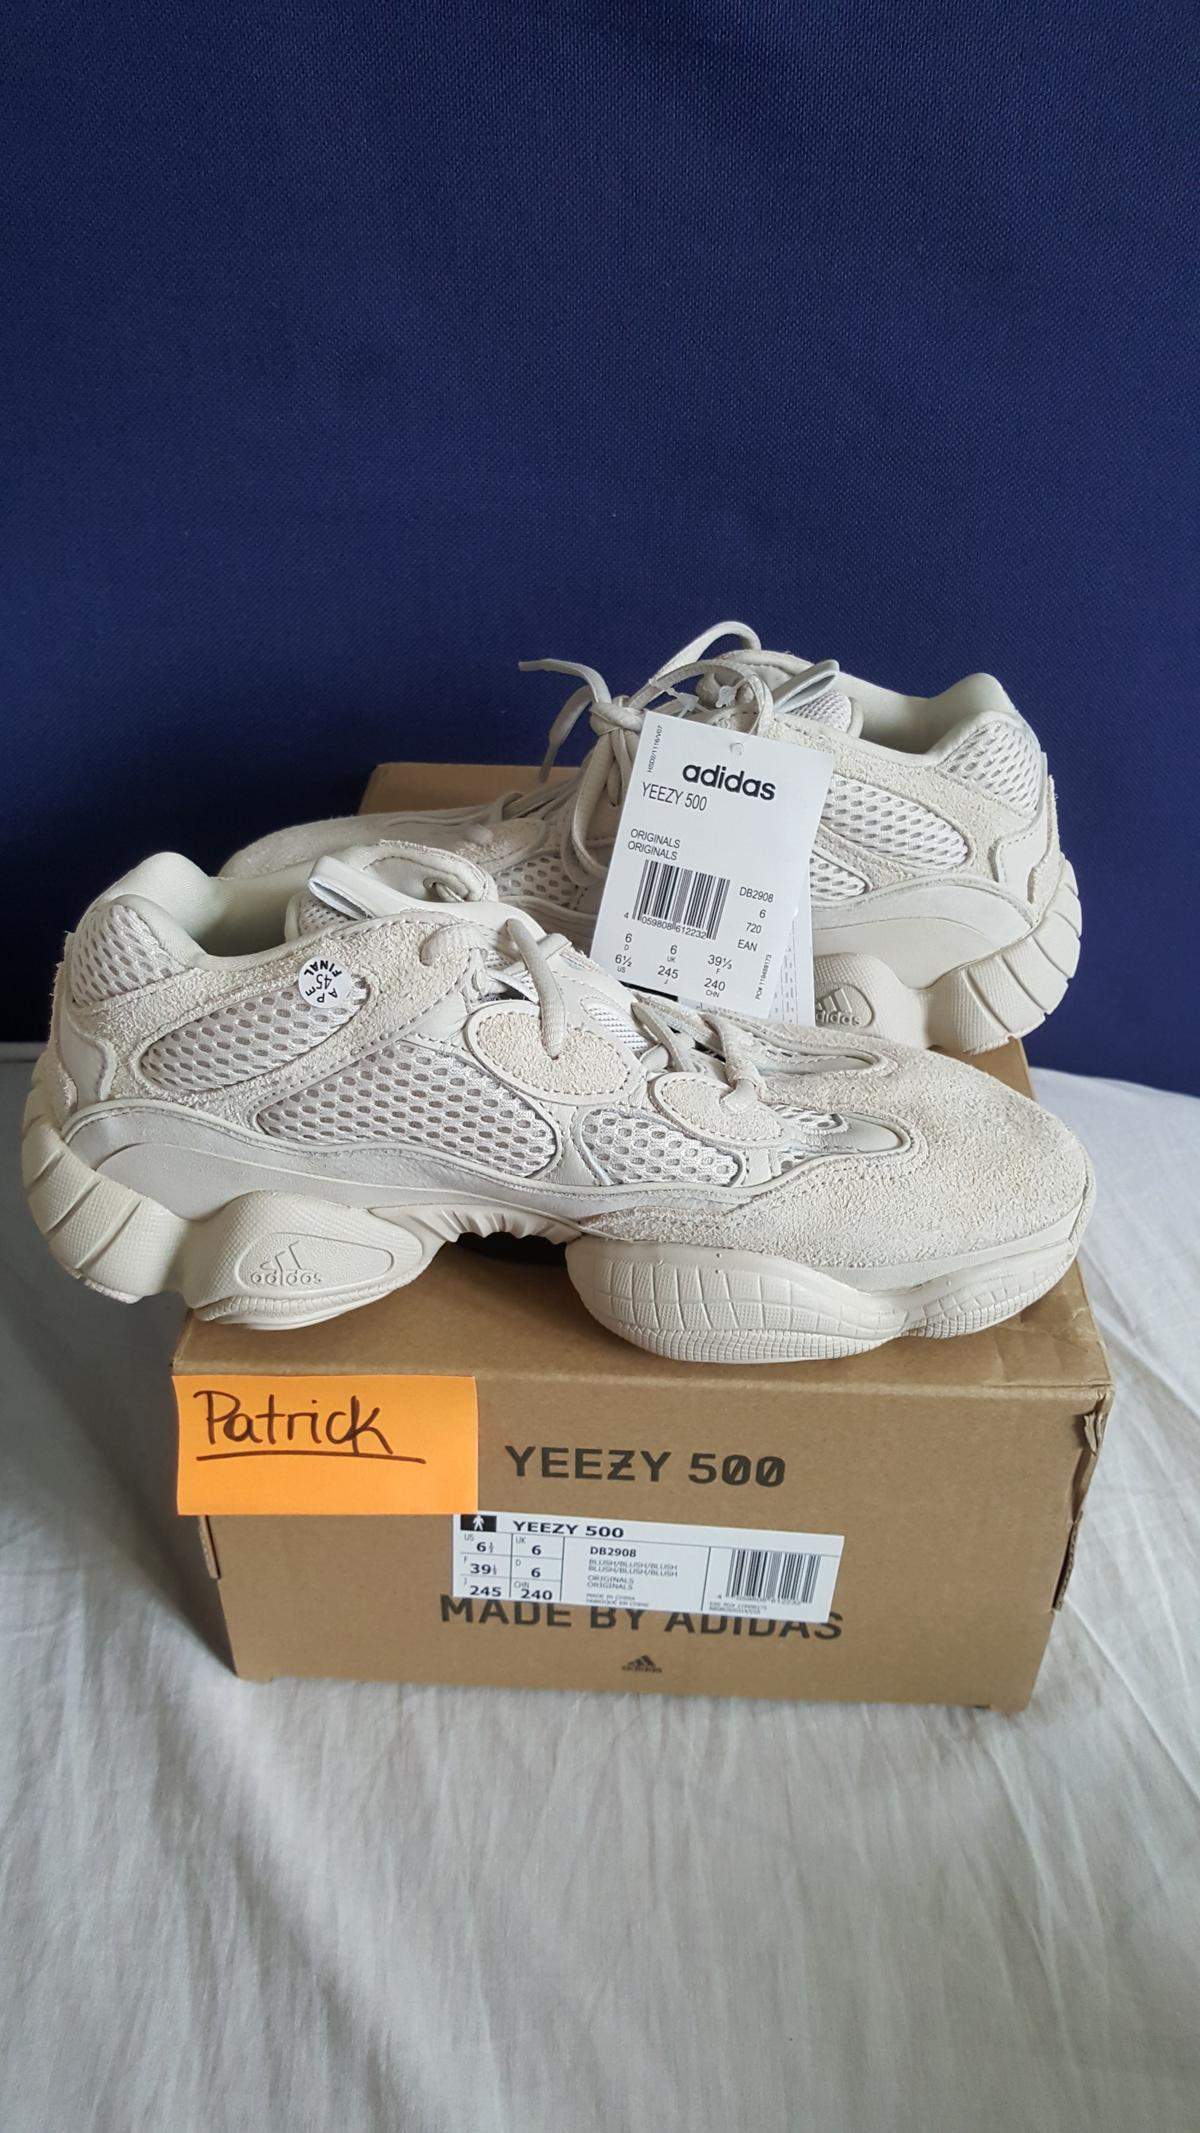 Yeezy Adidas In 39 500 80331 Size For München EH2IWD9